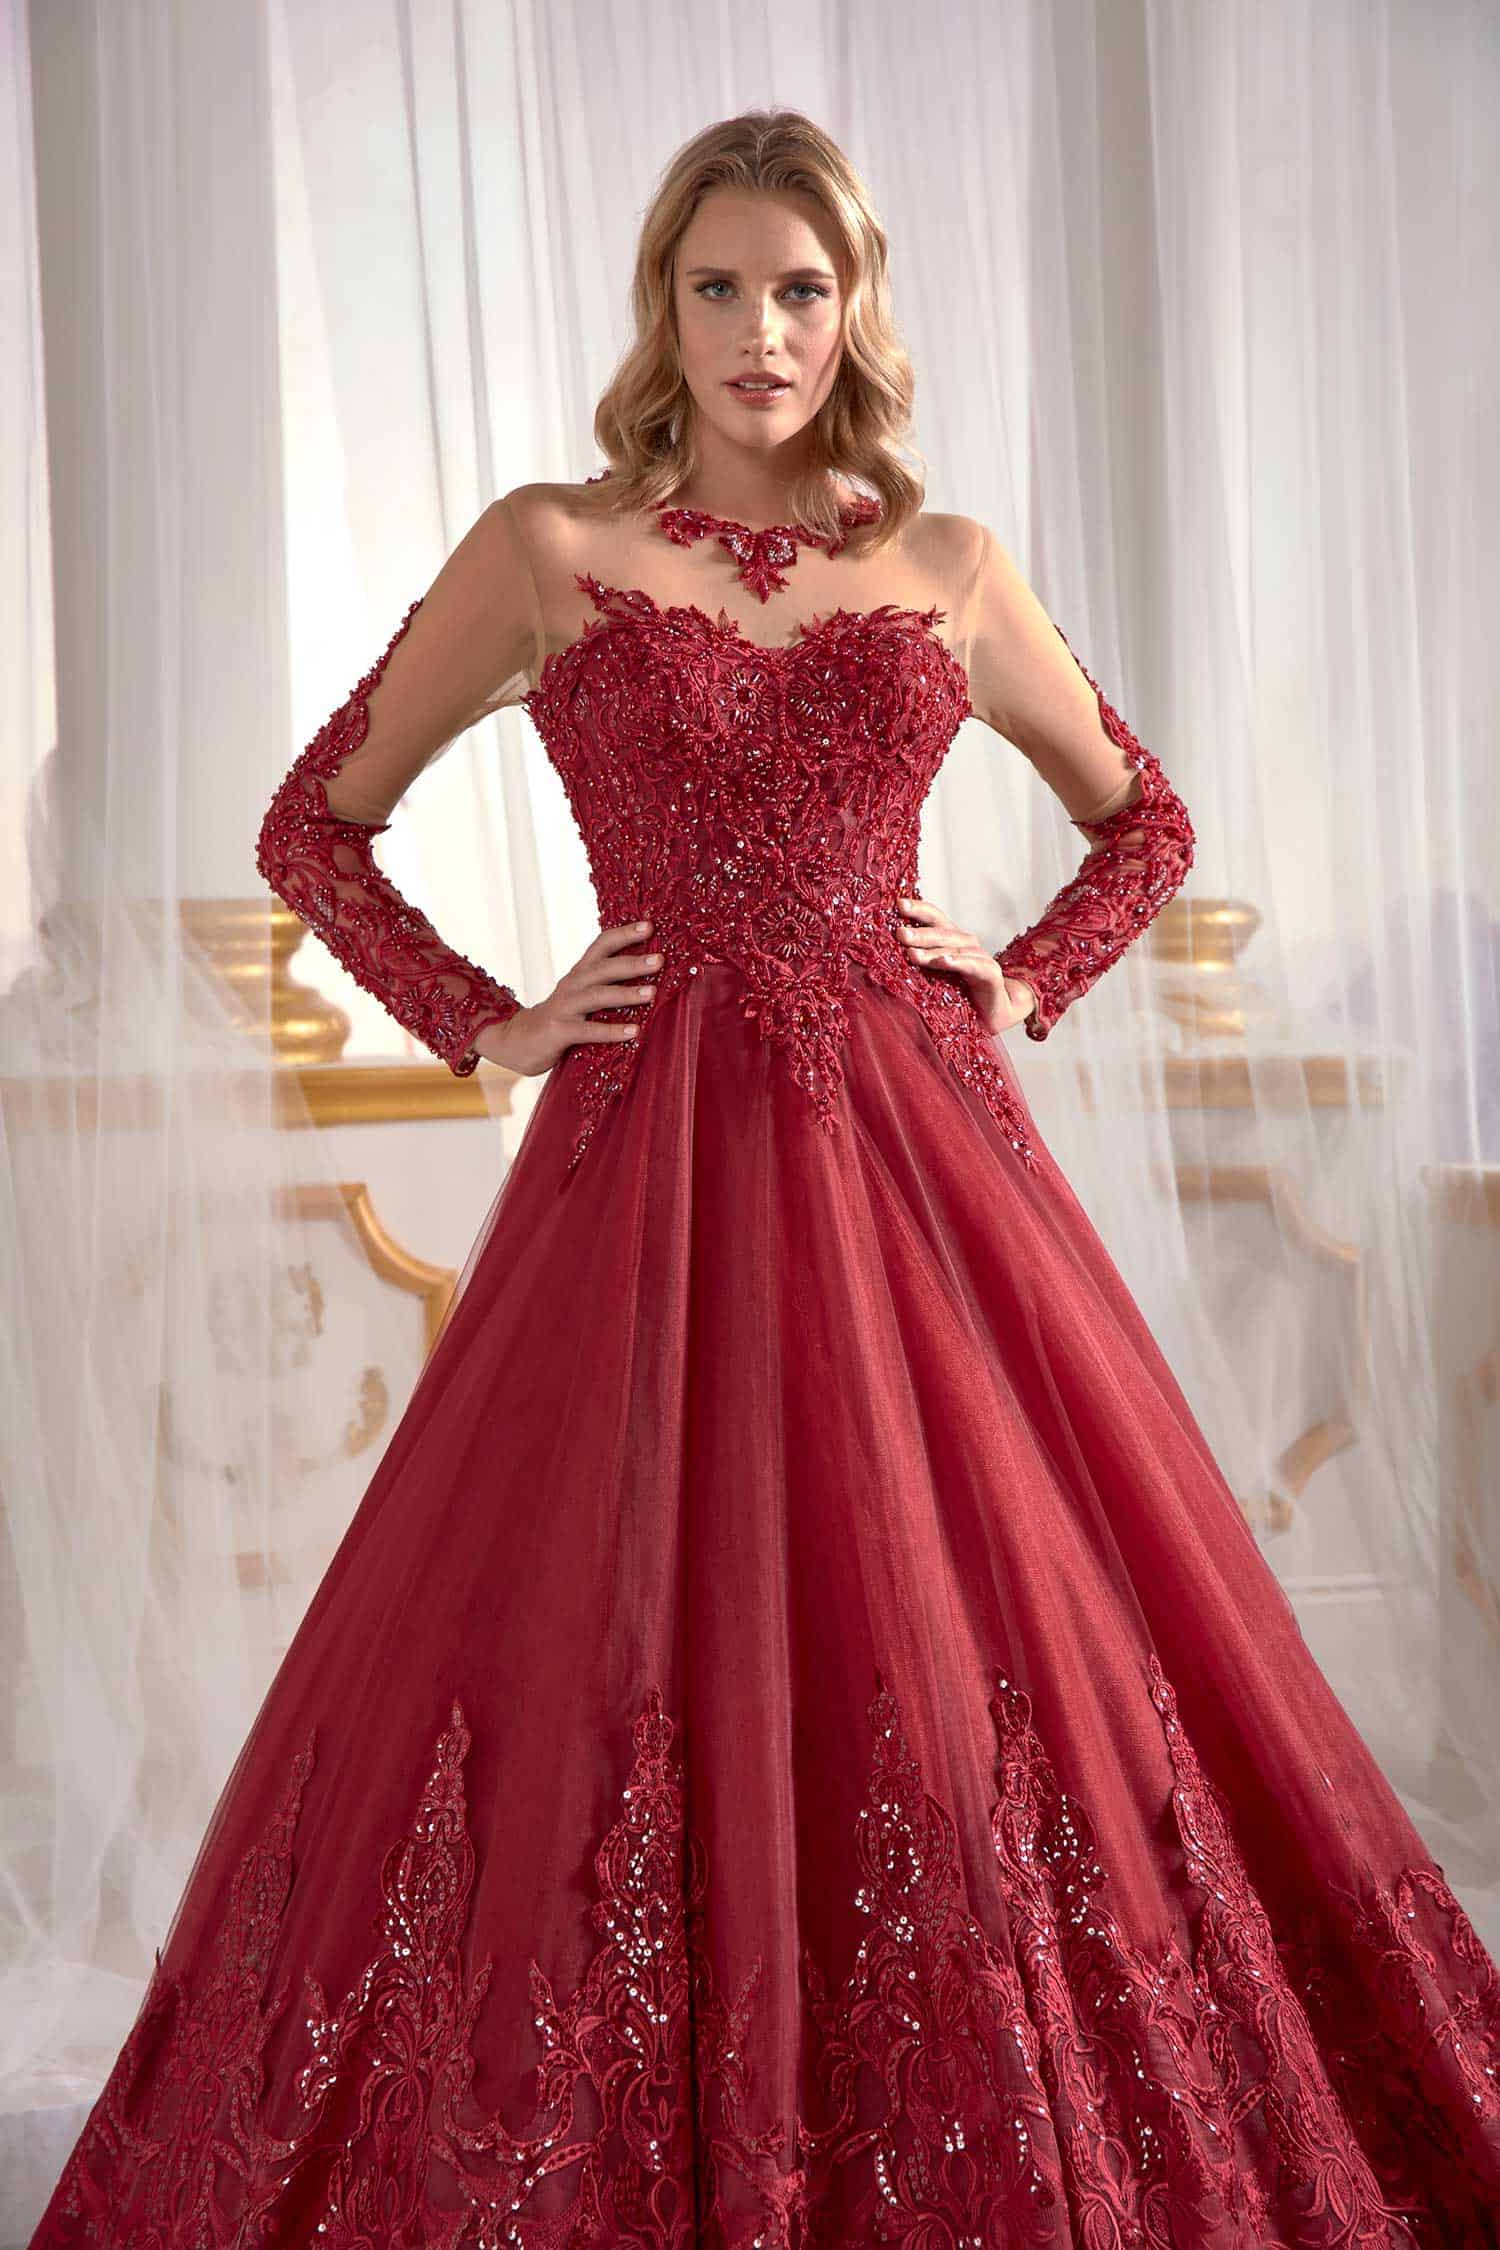 93a1a5a27c8 Red Prom Dress Cold Shoulder Guipure Lace Inserts Needle   Thread ...